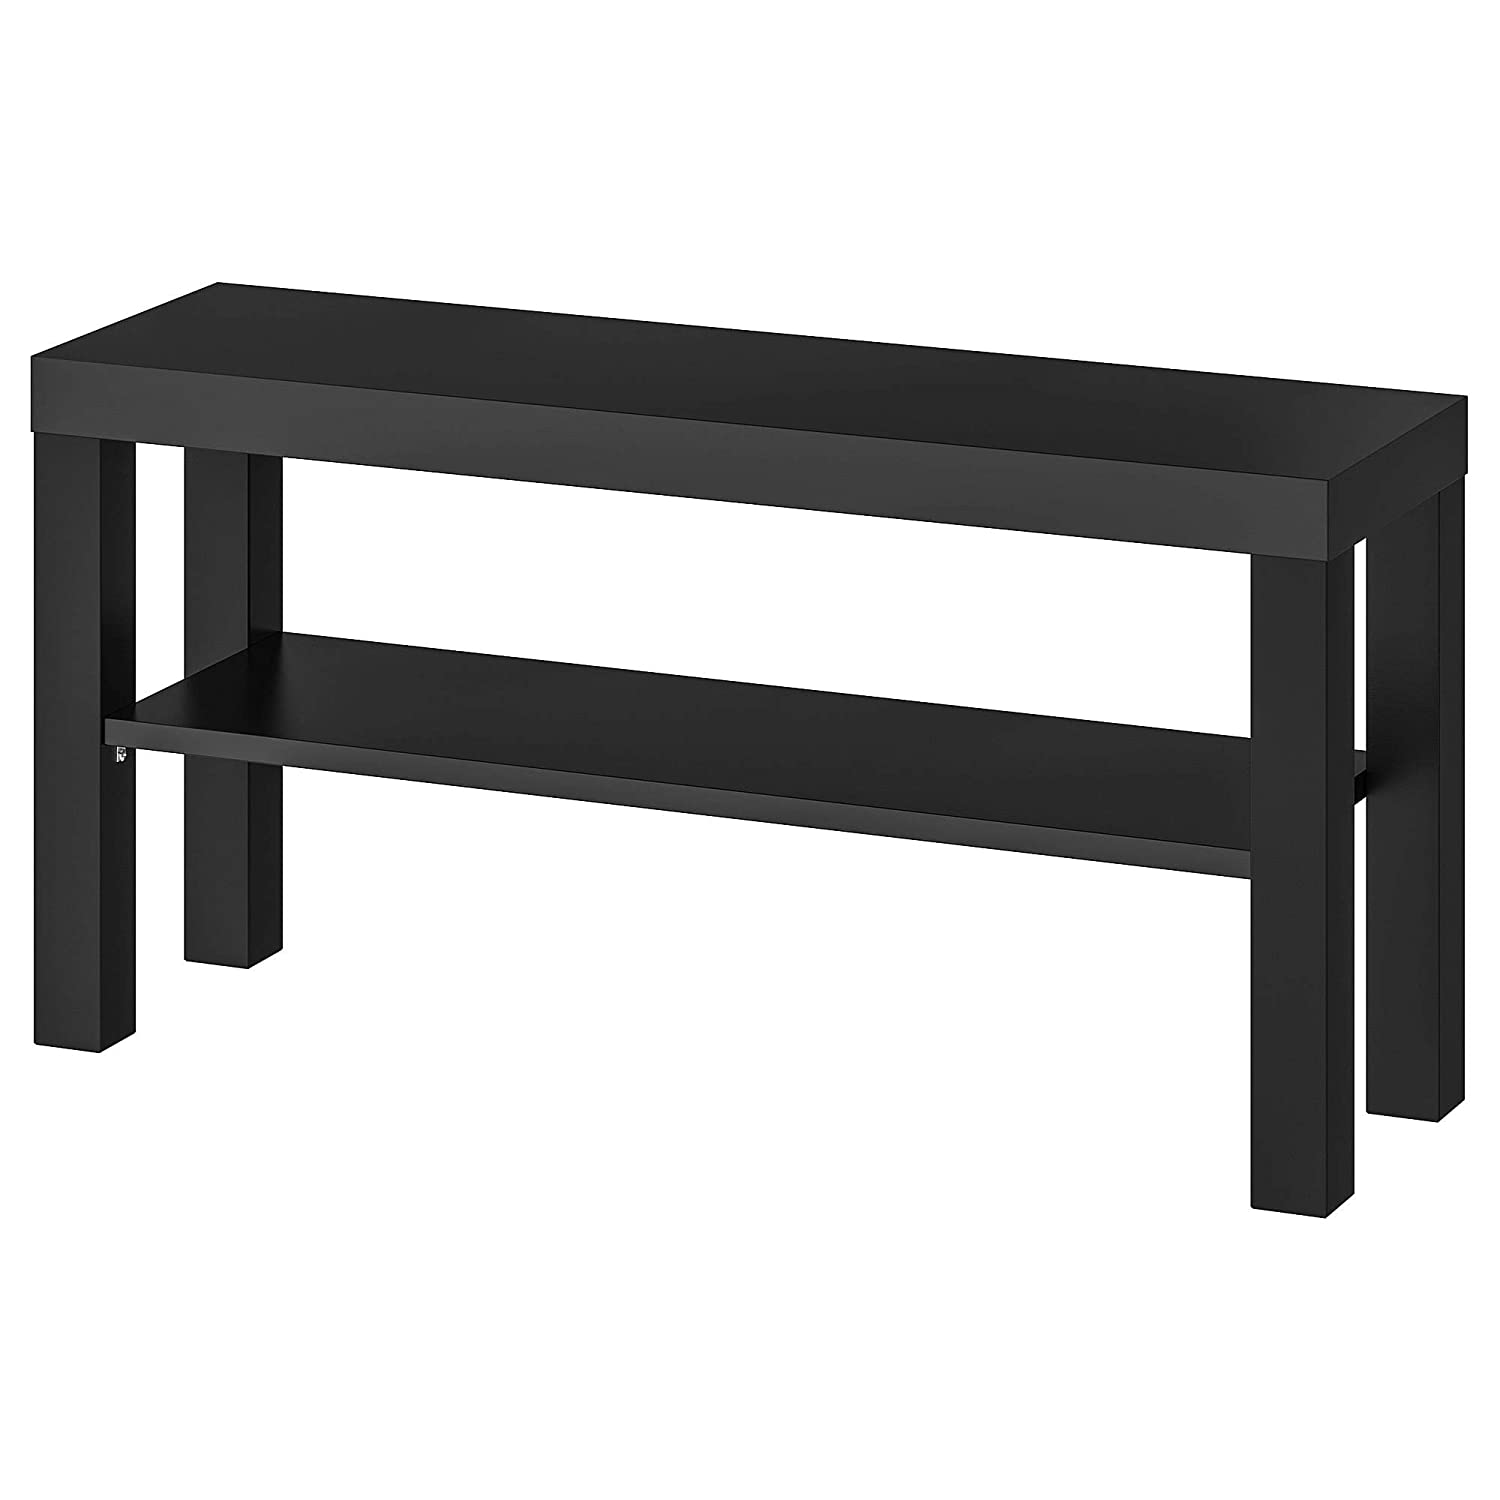 Groovy Ikea 902 432 97 Lack Tv Stand Black 35 3 8 Inches Machost Co Dining Chair Design Ideas Machostcouk